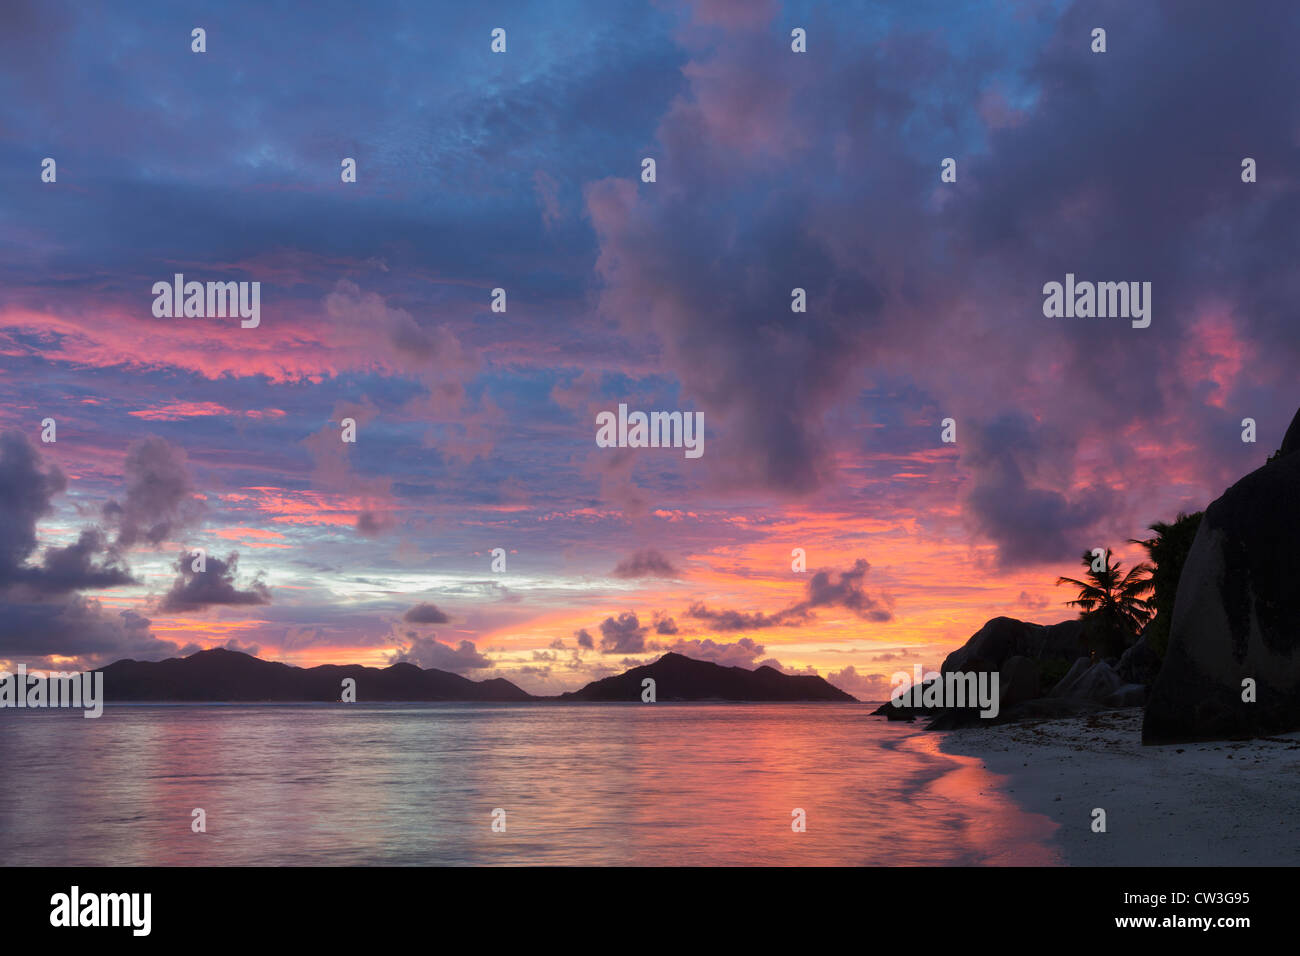 View of beach at sunset with granite boulders.La Digue Island. Seychelles. - Stock Image